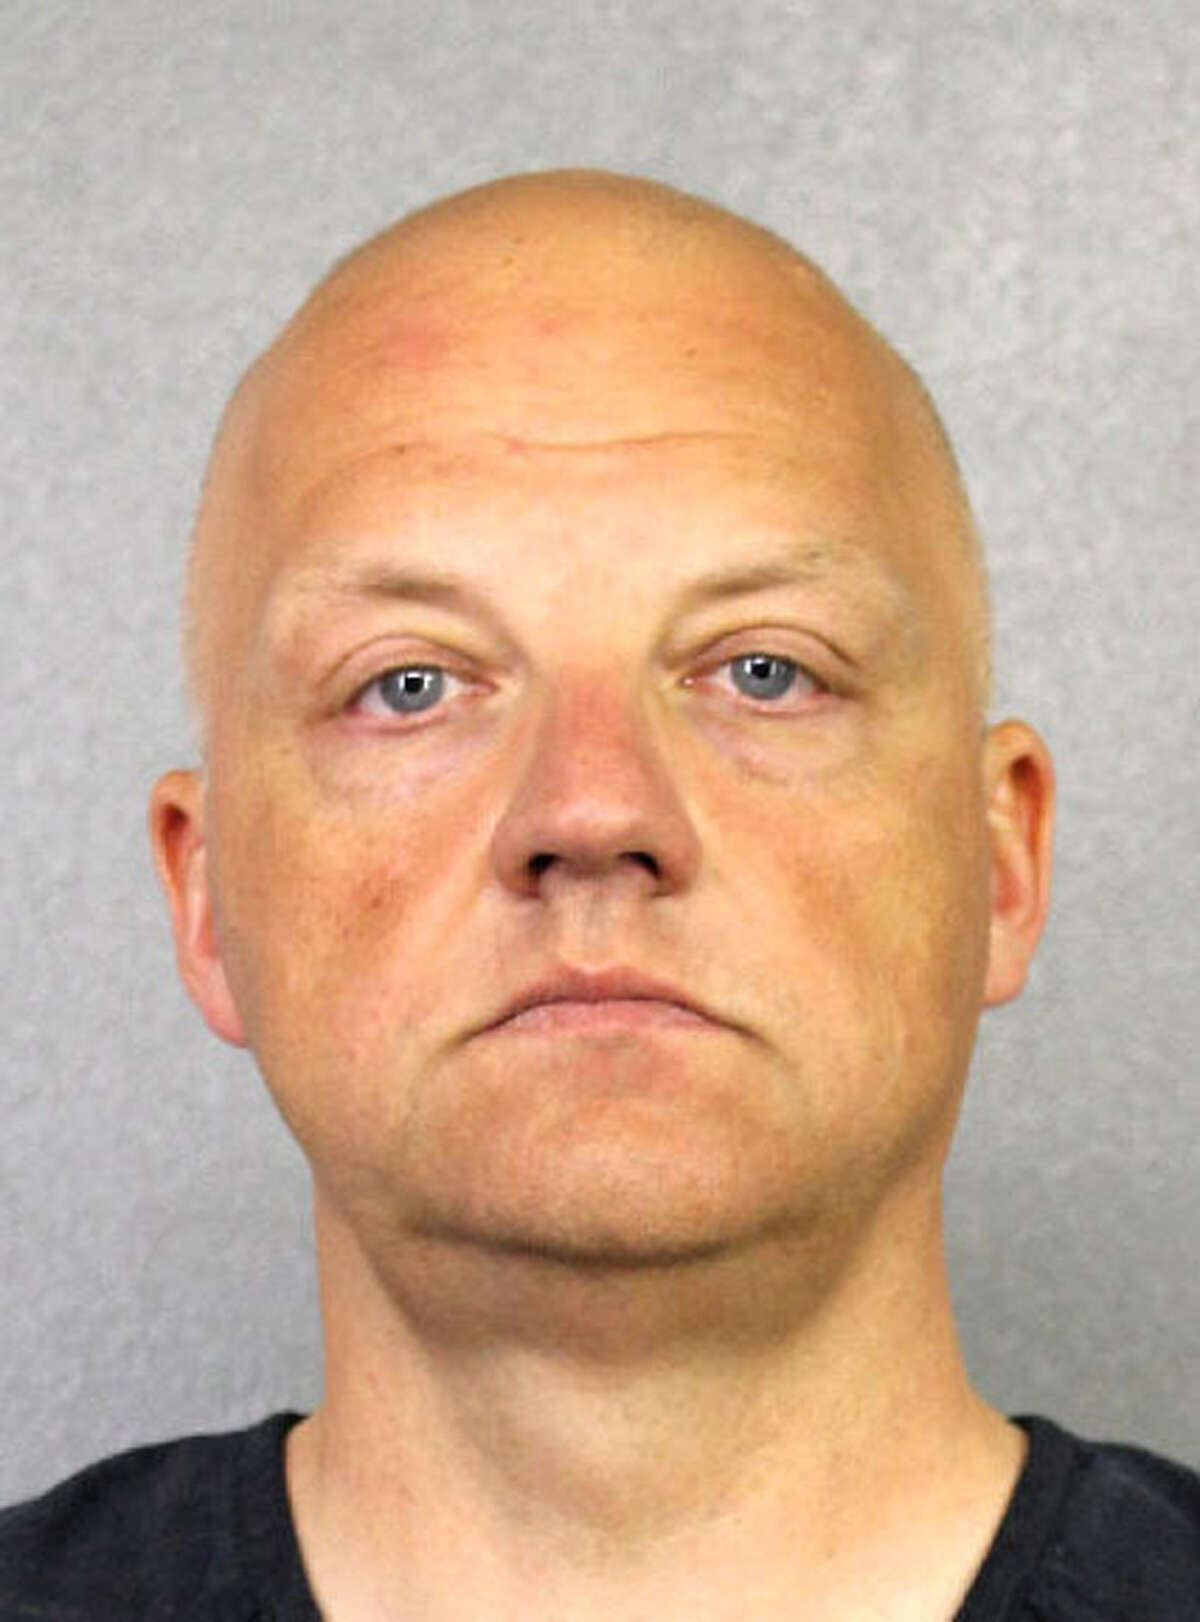 FILE- This file photo provided by the Broward County Sheriff's Office shows Oliver Schmidt under arrest on Jan. 7, 2017. Schmidt, the general manager of the engineering and environmental office for Volkswagen America, was arrested in connection with the company's emissions-cheating scandal. Schmidt goes before a federal judge Thursday, Jan. 12, 2017, seeking release on bail. (Broward County Sheriff's Office via AP, File)